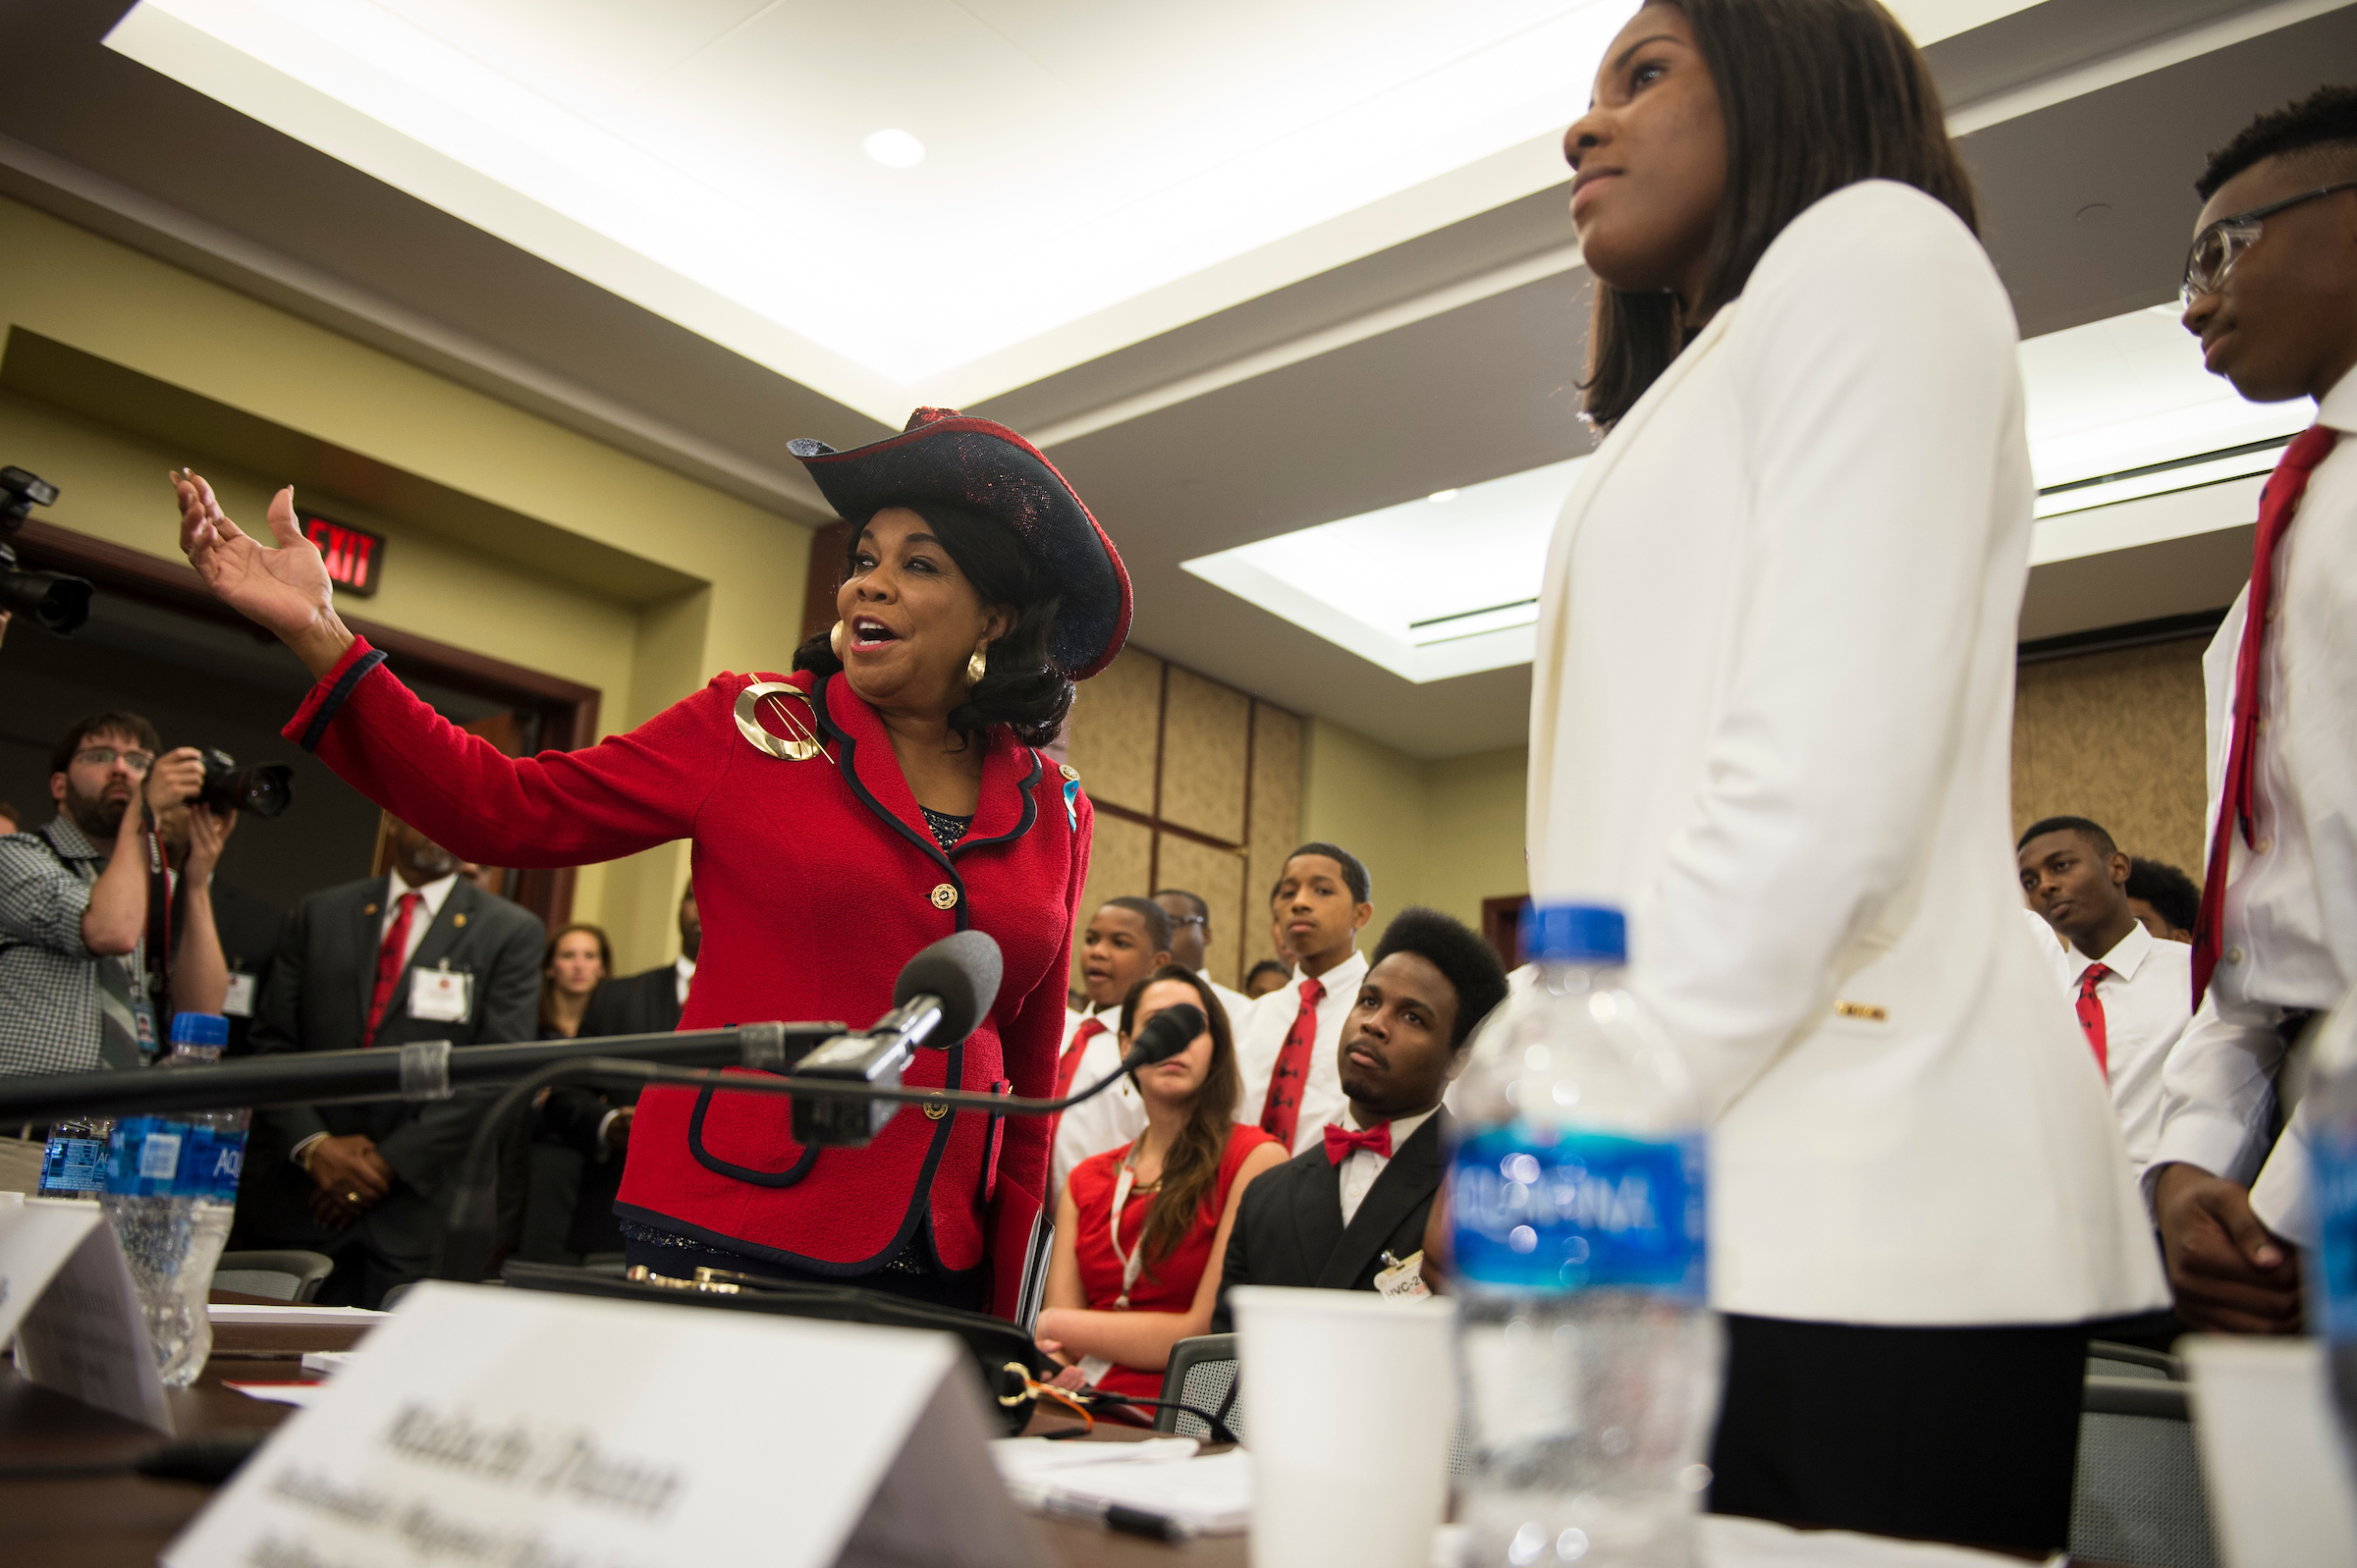 UNITED STATES - May 23: Rep. Frederica Wilson, D-Fla., welcomes students who have been effected by gun violence to The Gun Violence Prevention Task Force panel Wednesday afternoon May 23, 2018. (Photo by Sarah Silbiger/CQ Roll Call)